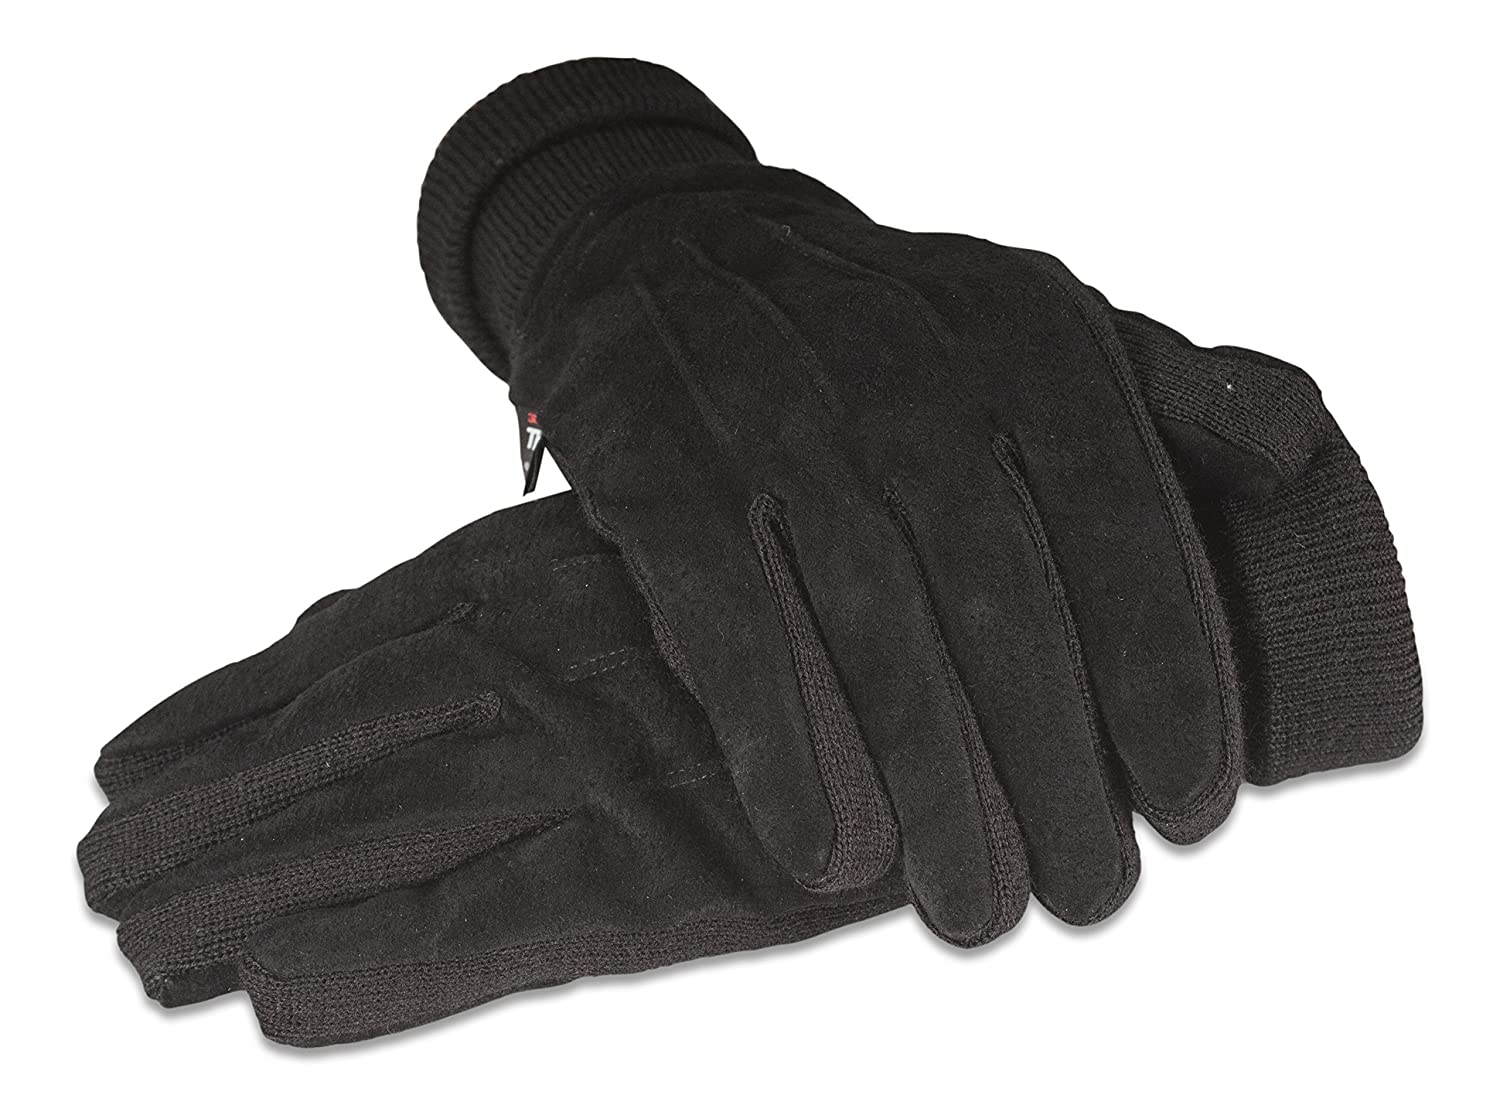 Ladies thermal leather gloves uk - Quivano Mens Suede Leather Thermal Thinsulate Lined Gloves With Elasticated Cuff For Winter 321 200 Medium Black Amazon Co Uk Clothing